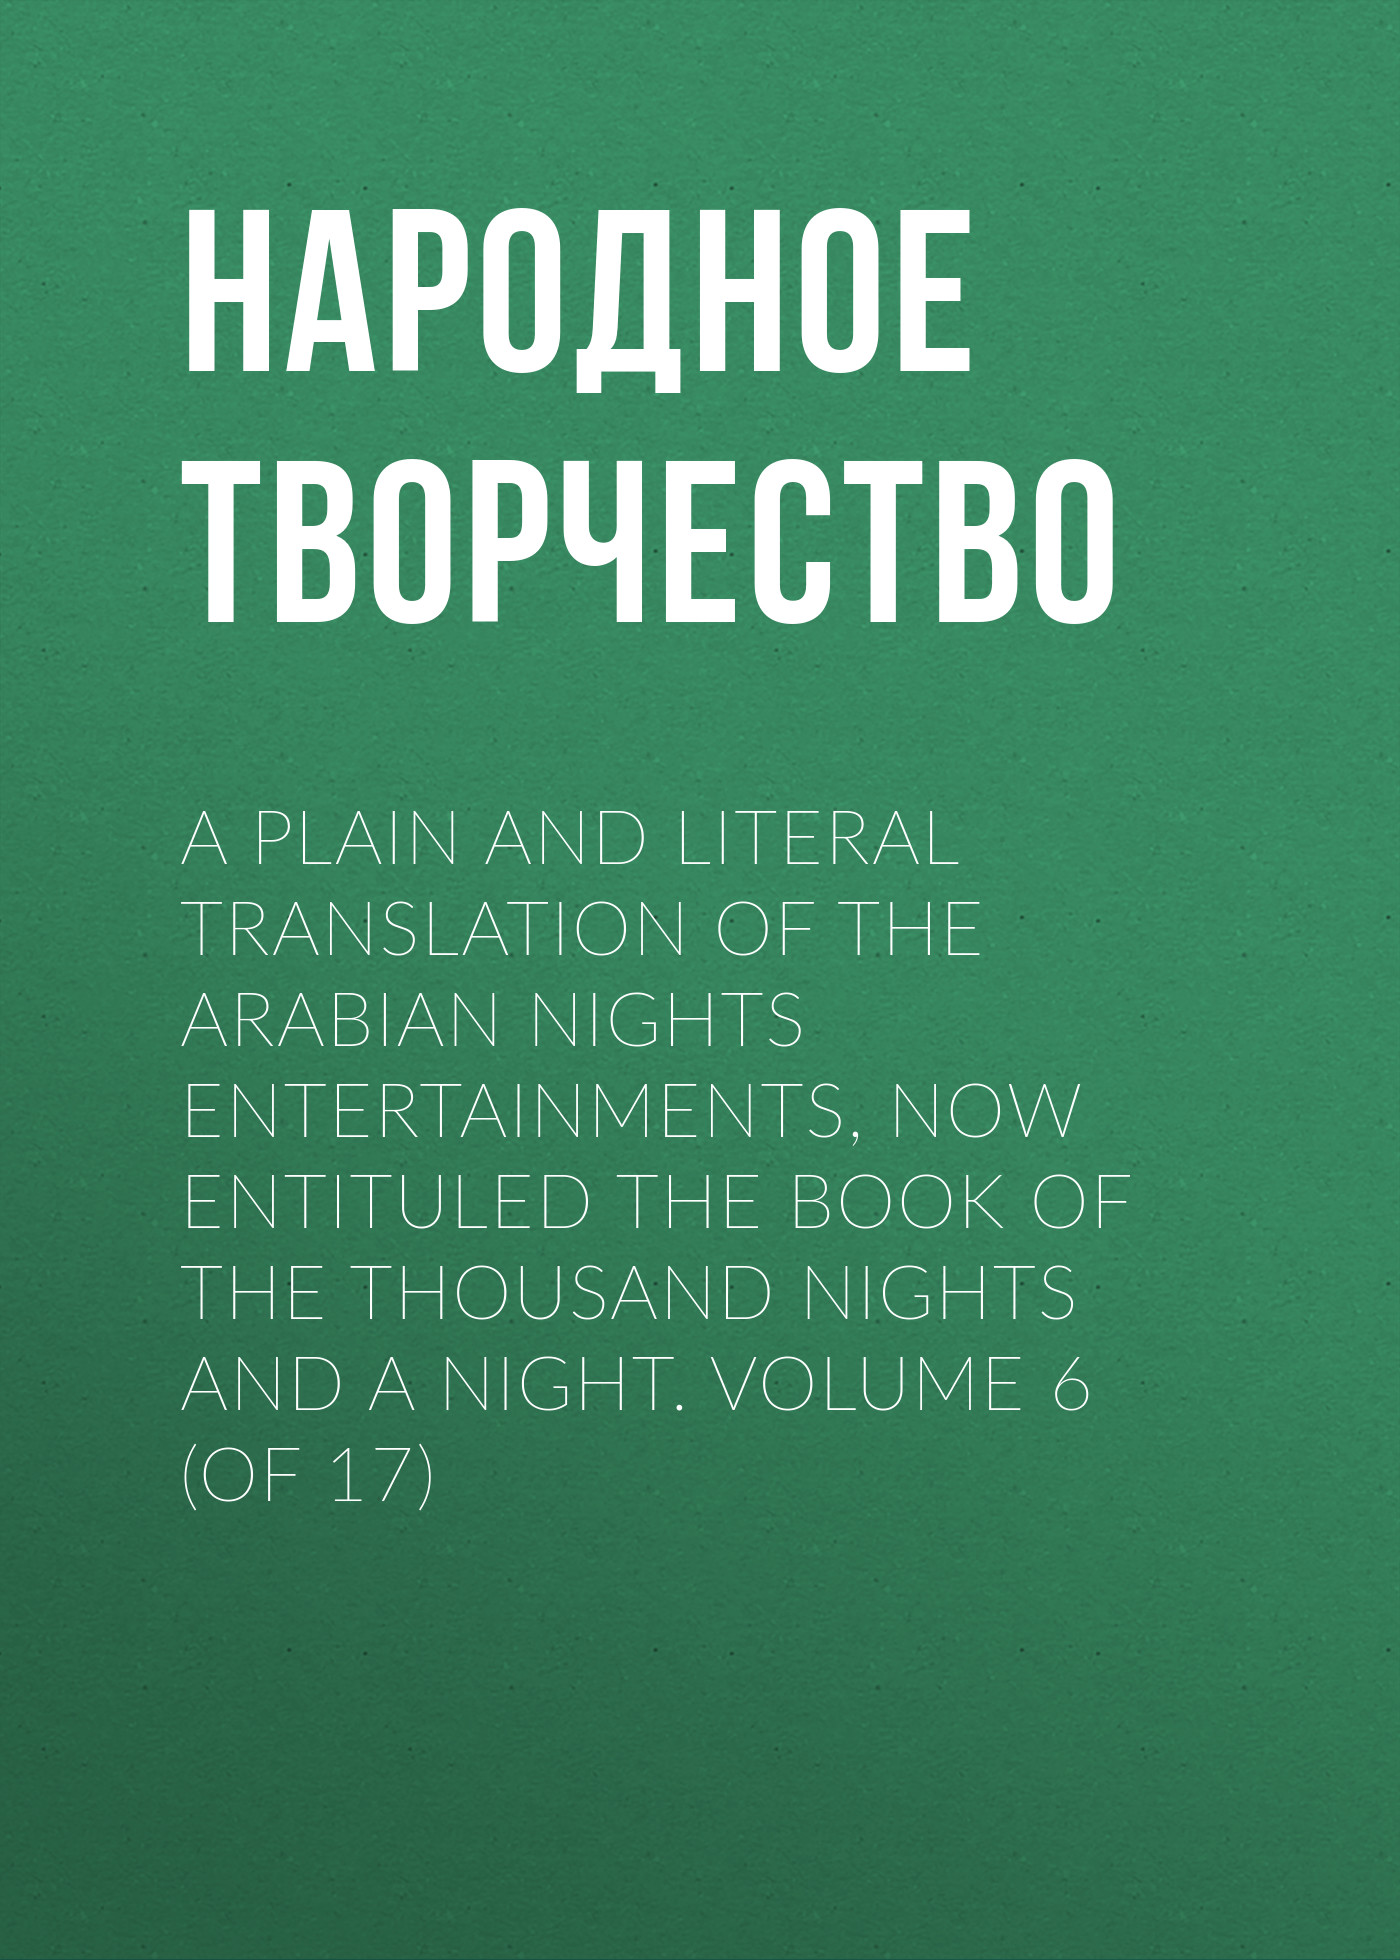 Народное творчество A plain and literal translation of the Arabian nights entertainments, now entituled The Book of the Thousand Nights and a Night. Volume 6 (of 17) народное творчество a plain and literal translation of the arabian nights entertainments now entituled the book of the thousand nights and a night volume 6 of 17